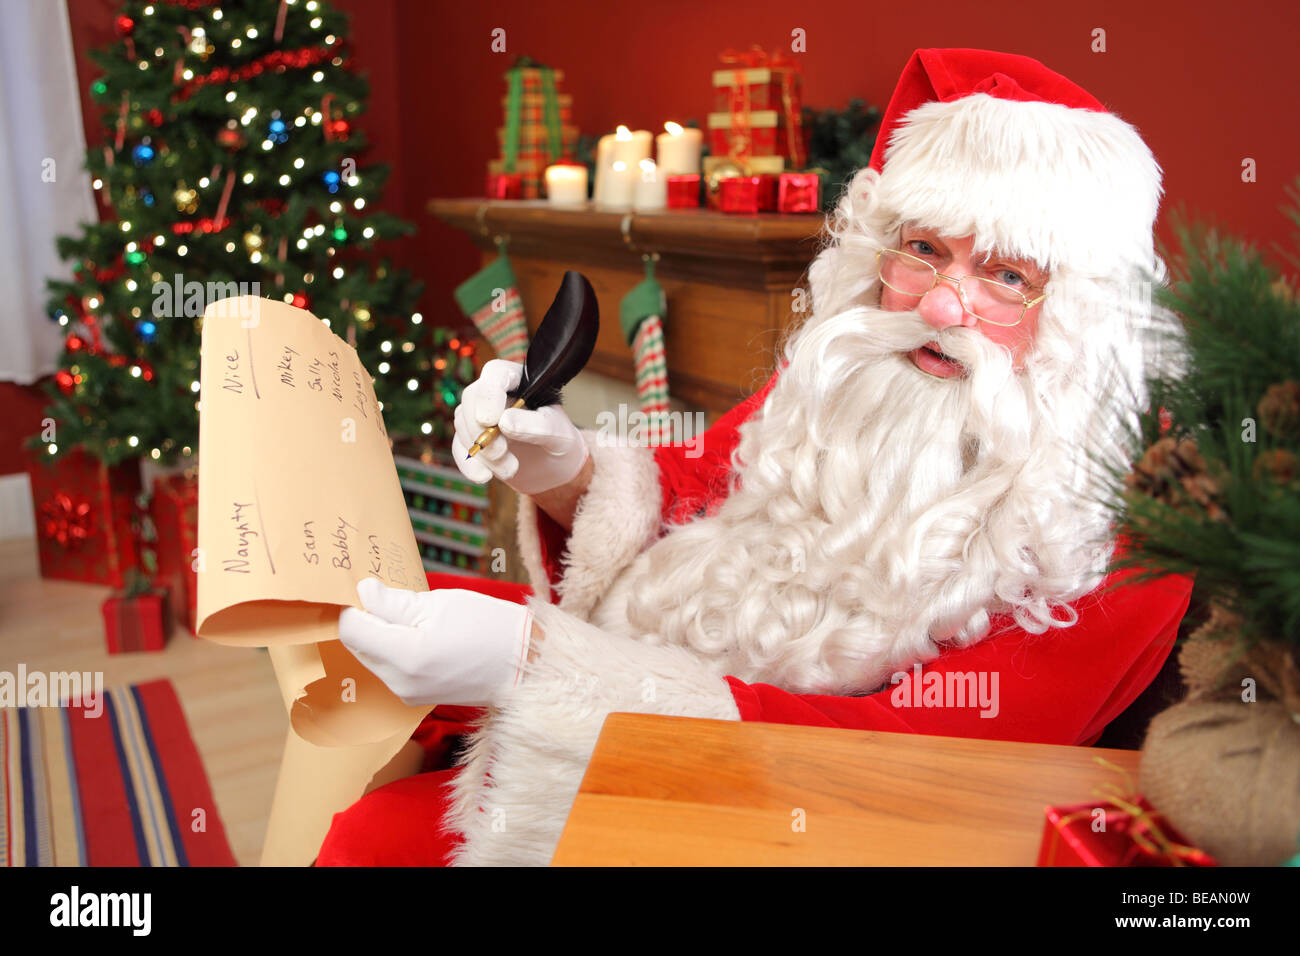 Santa Claus writing names on list - Stock Image